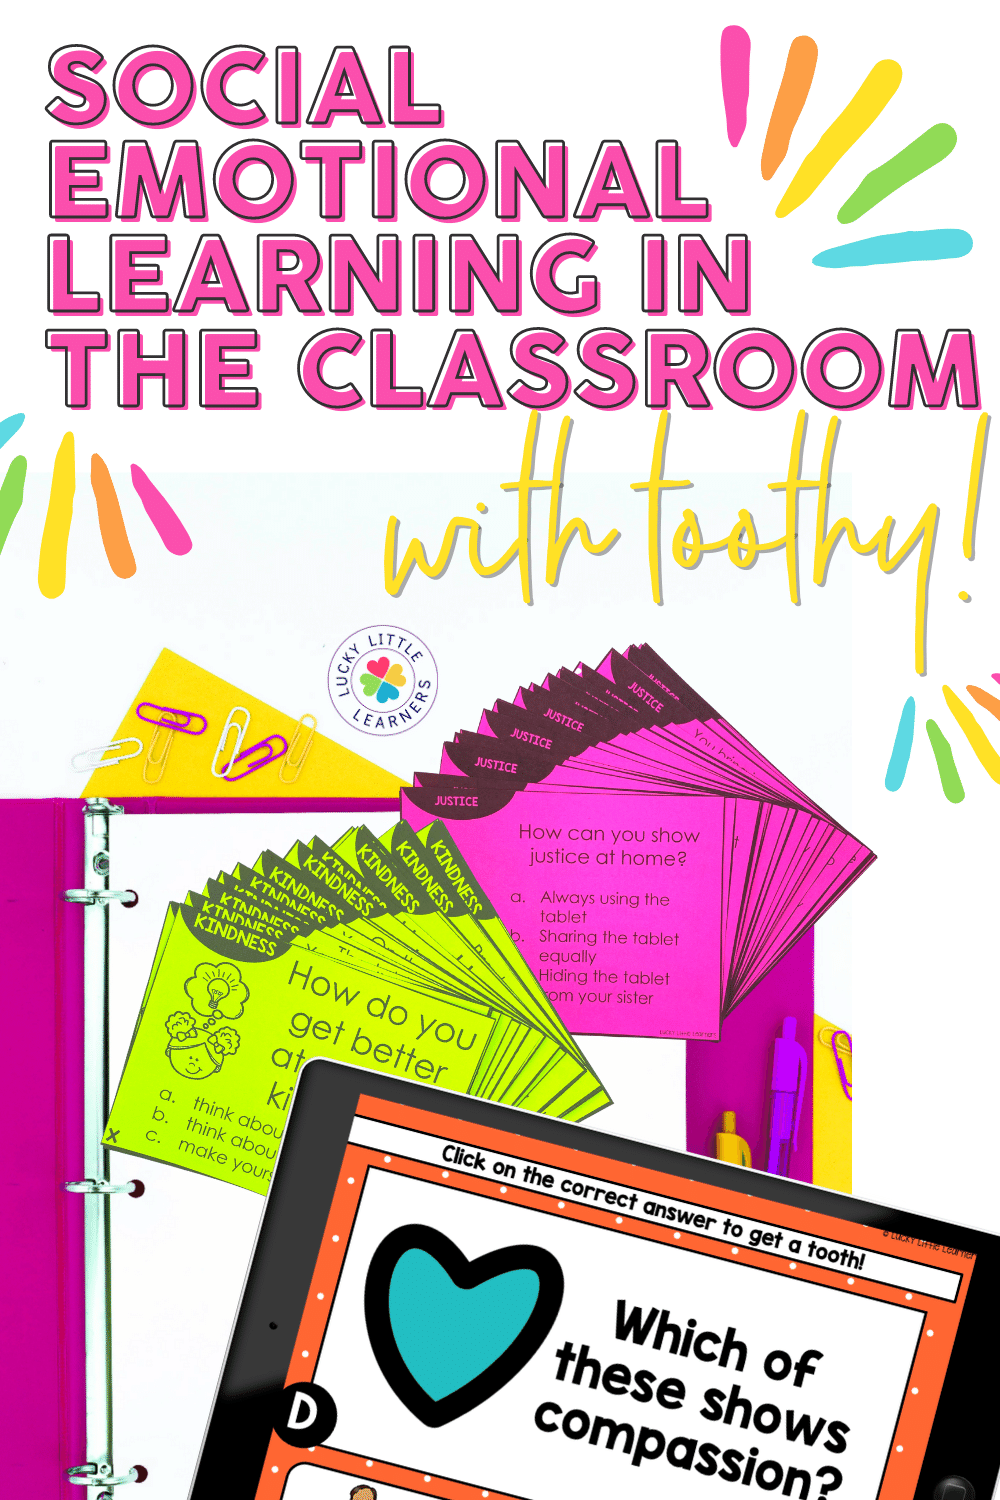 If you need more SEL activities and resources to help cement social emotional learning in your classroom, check out the SEL Toothy game!